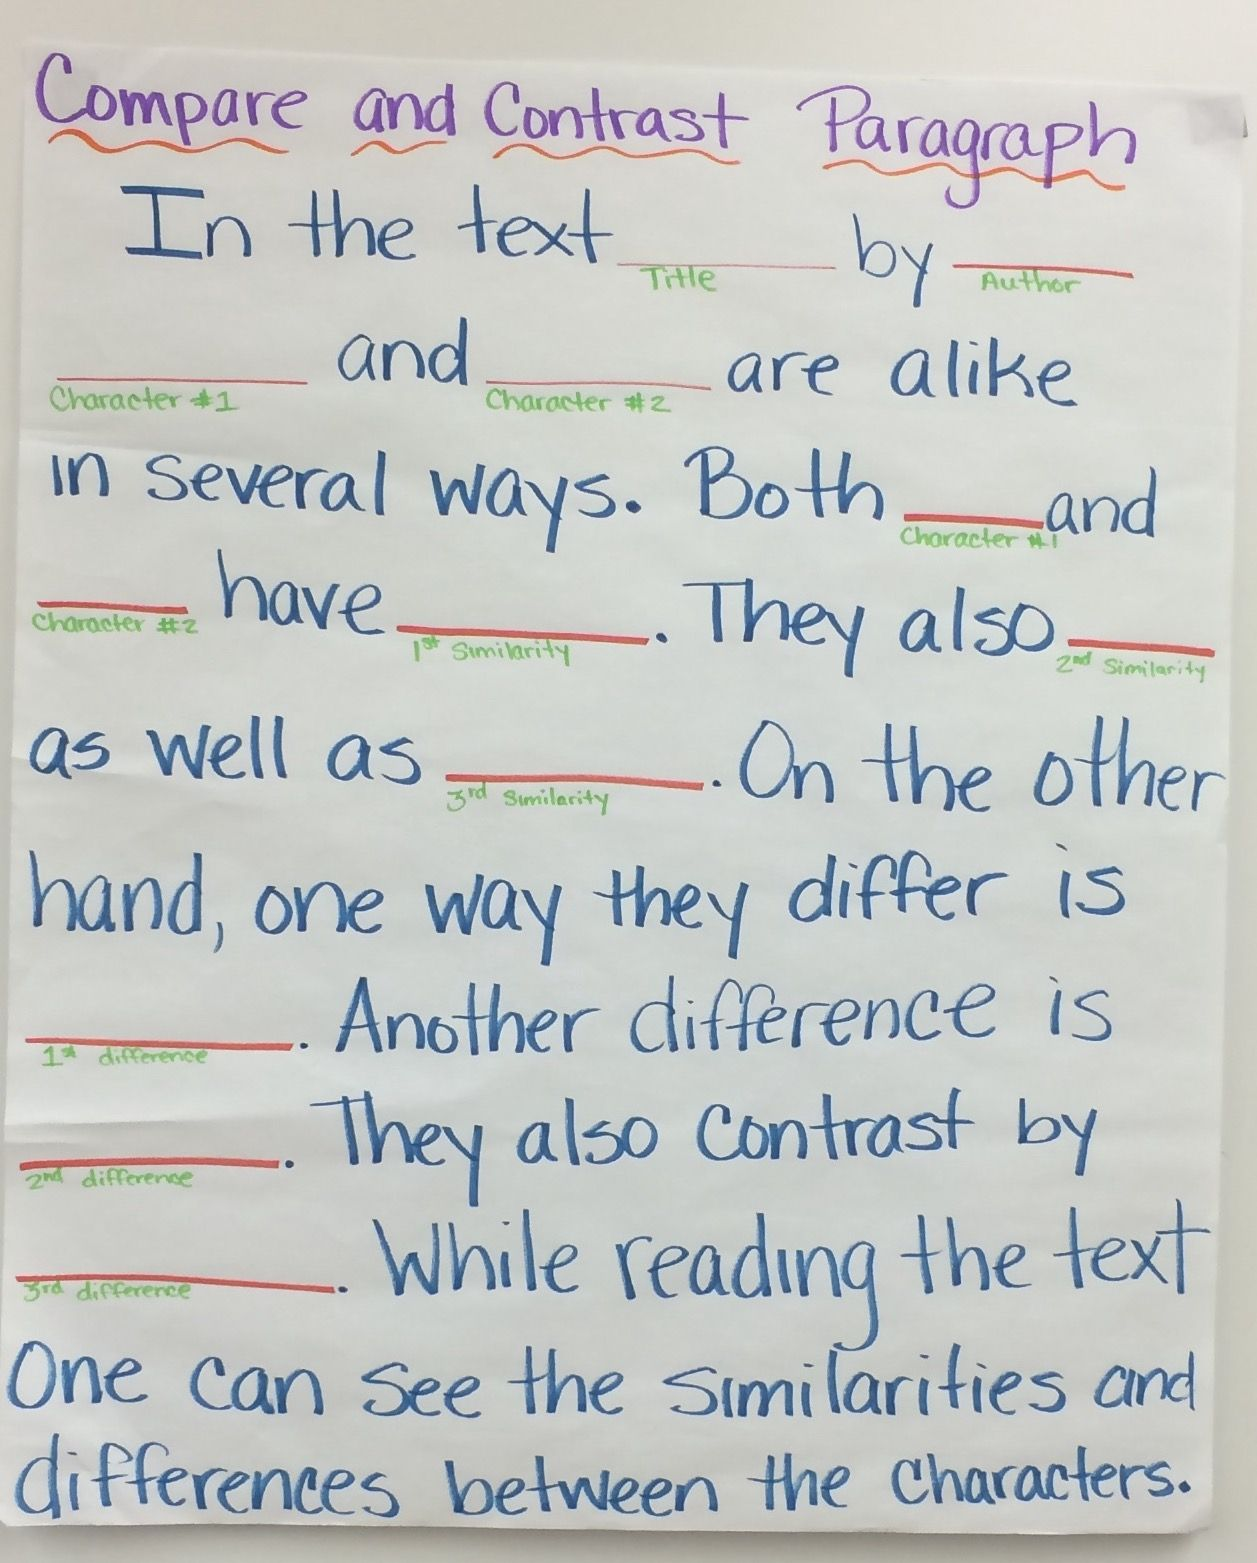 compare and contrast paragraph frame ell sentence frames compare and contrast paragraph frame contrast essayscompare and contrast paragraph writing4th